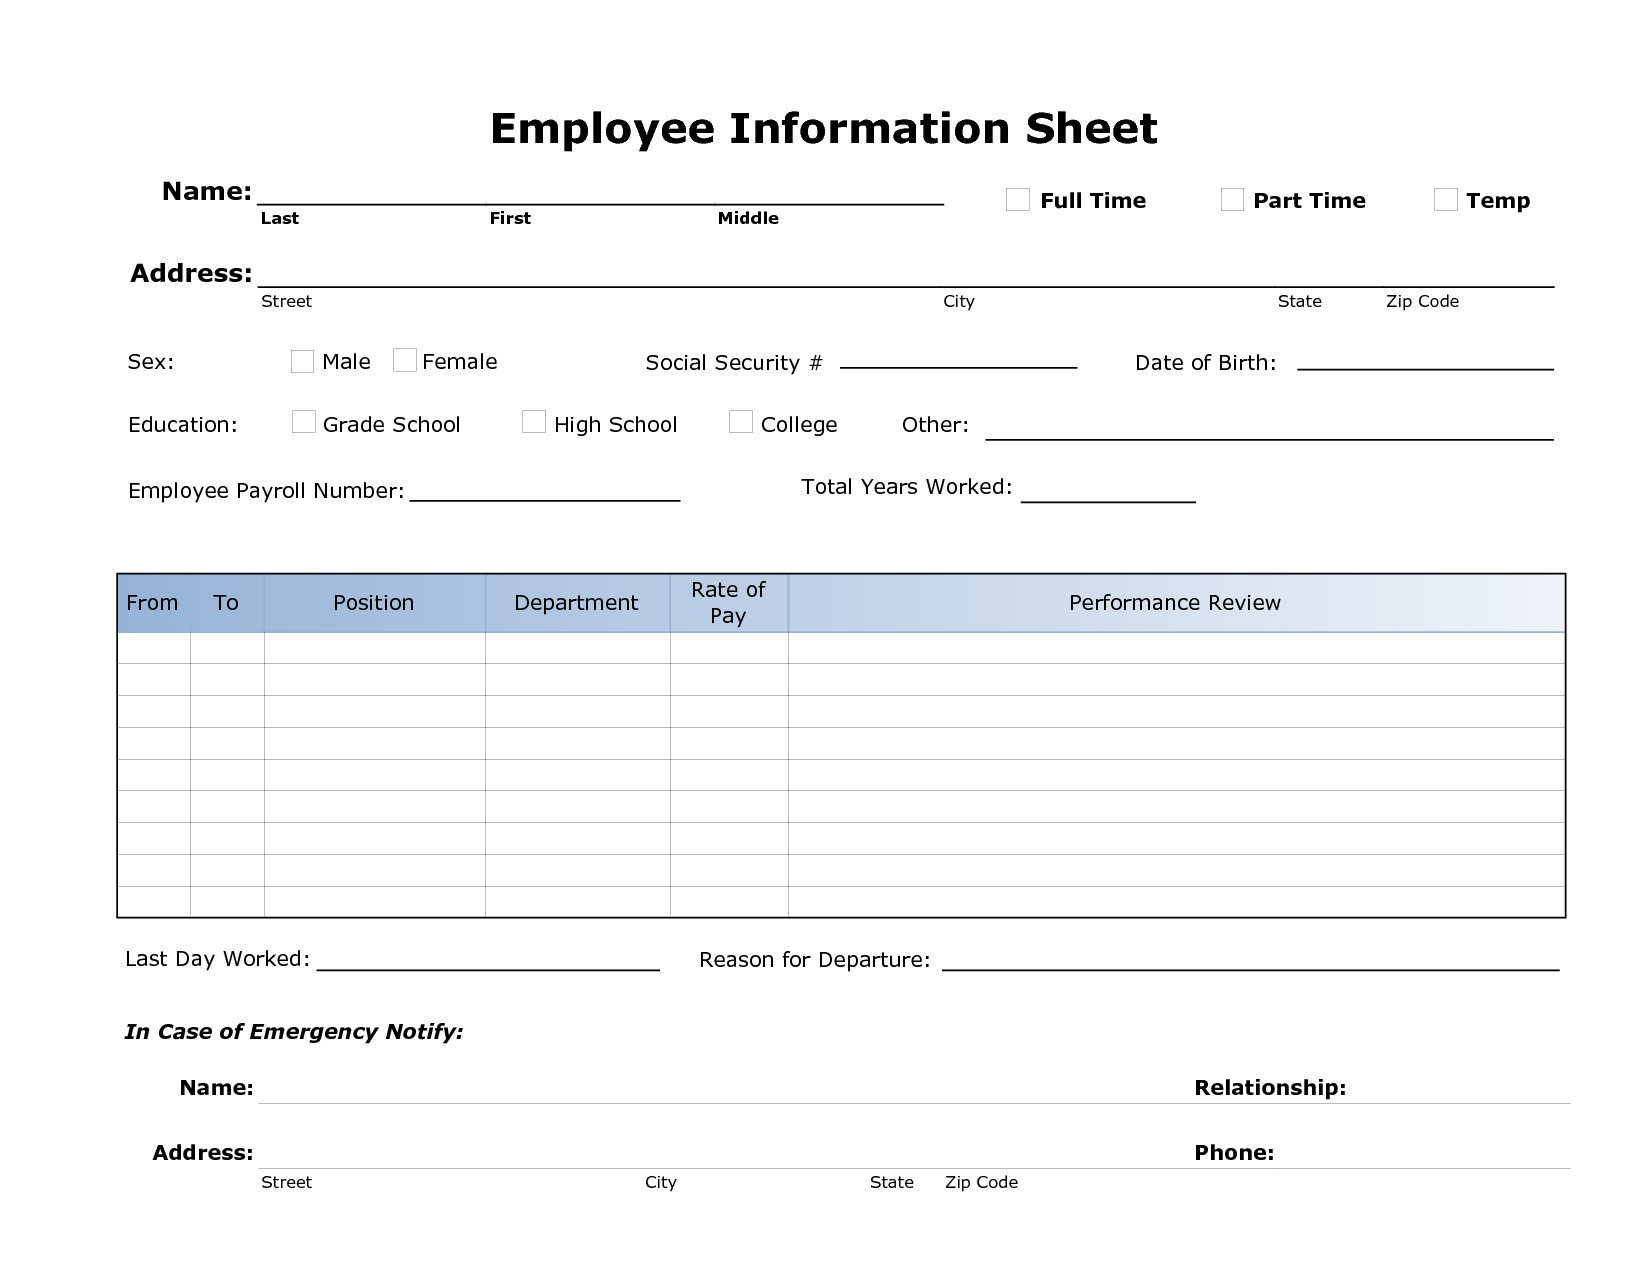 Employee Information Sheet Template